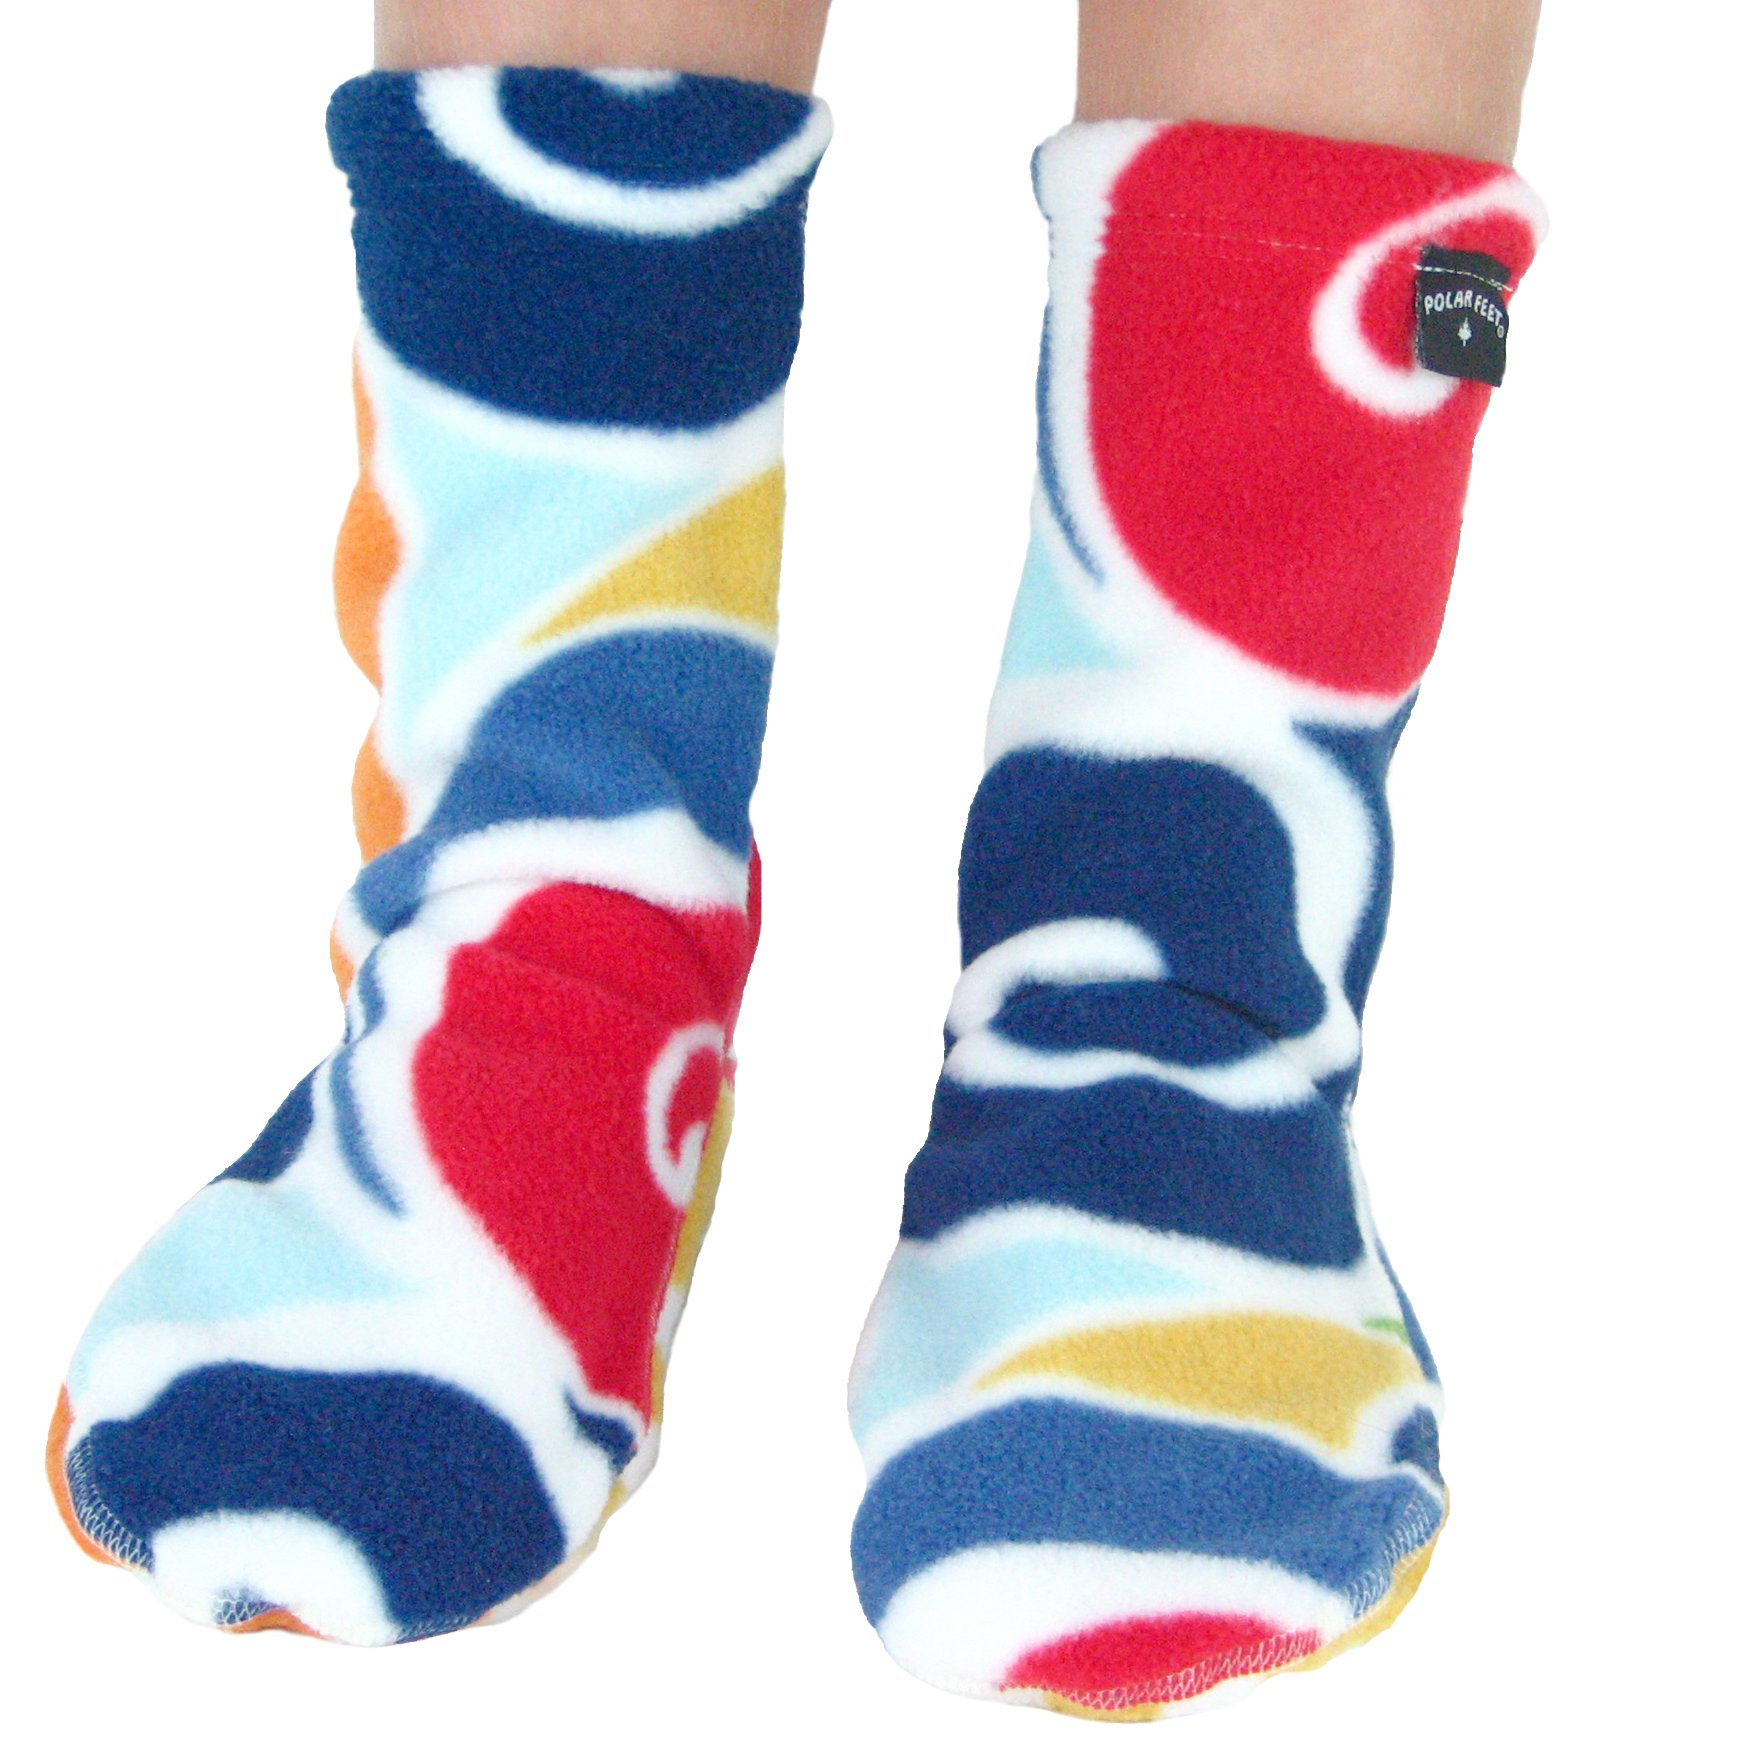 Polar Feet Kids' Socks Nonskid Curlz S